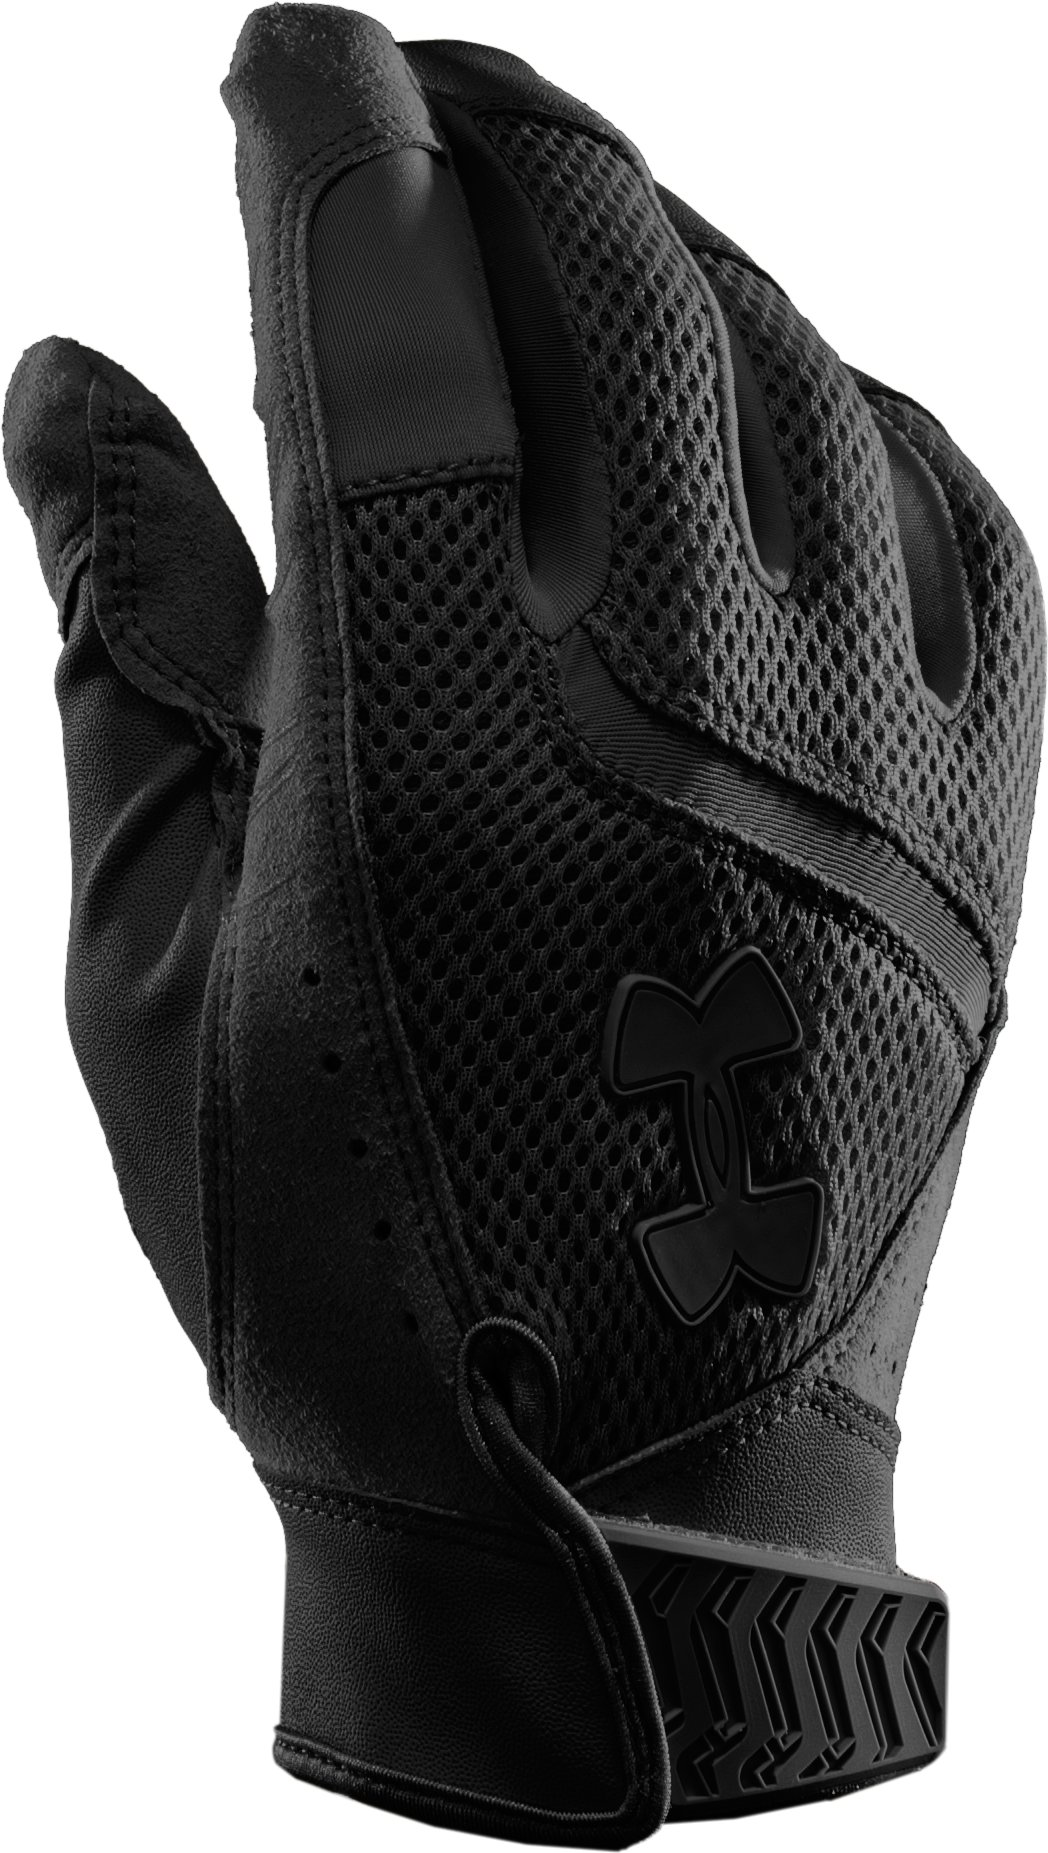 Men's Tactical Summer Blackout Glove, Black